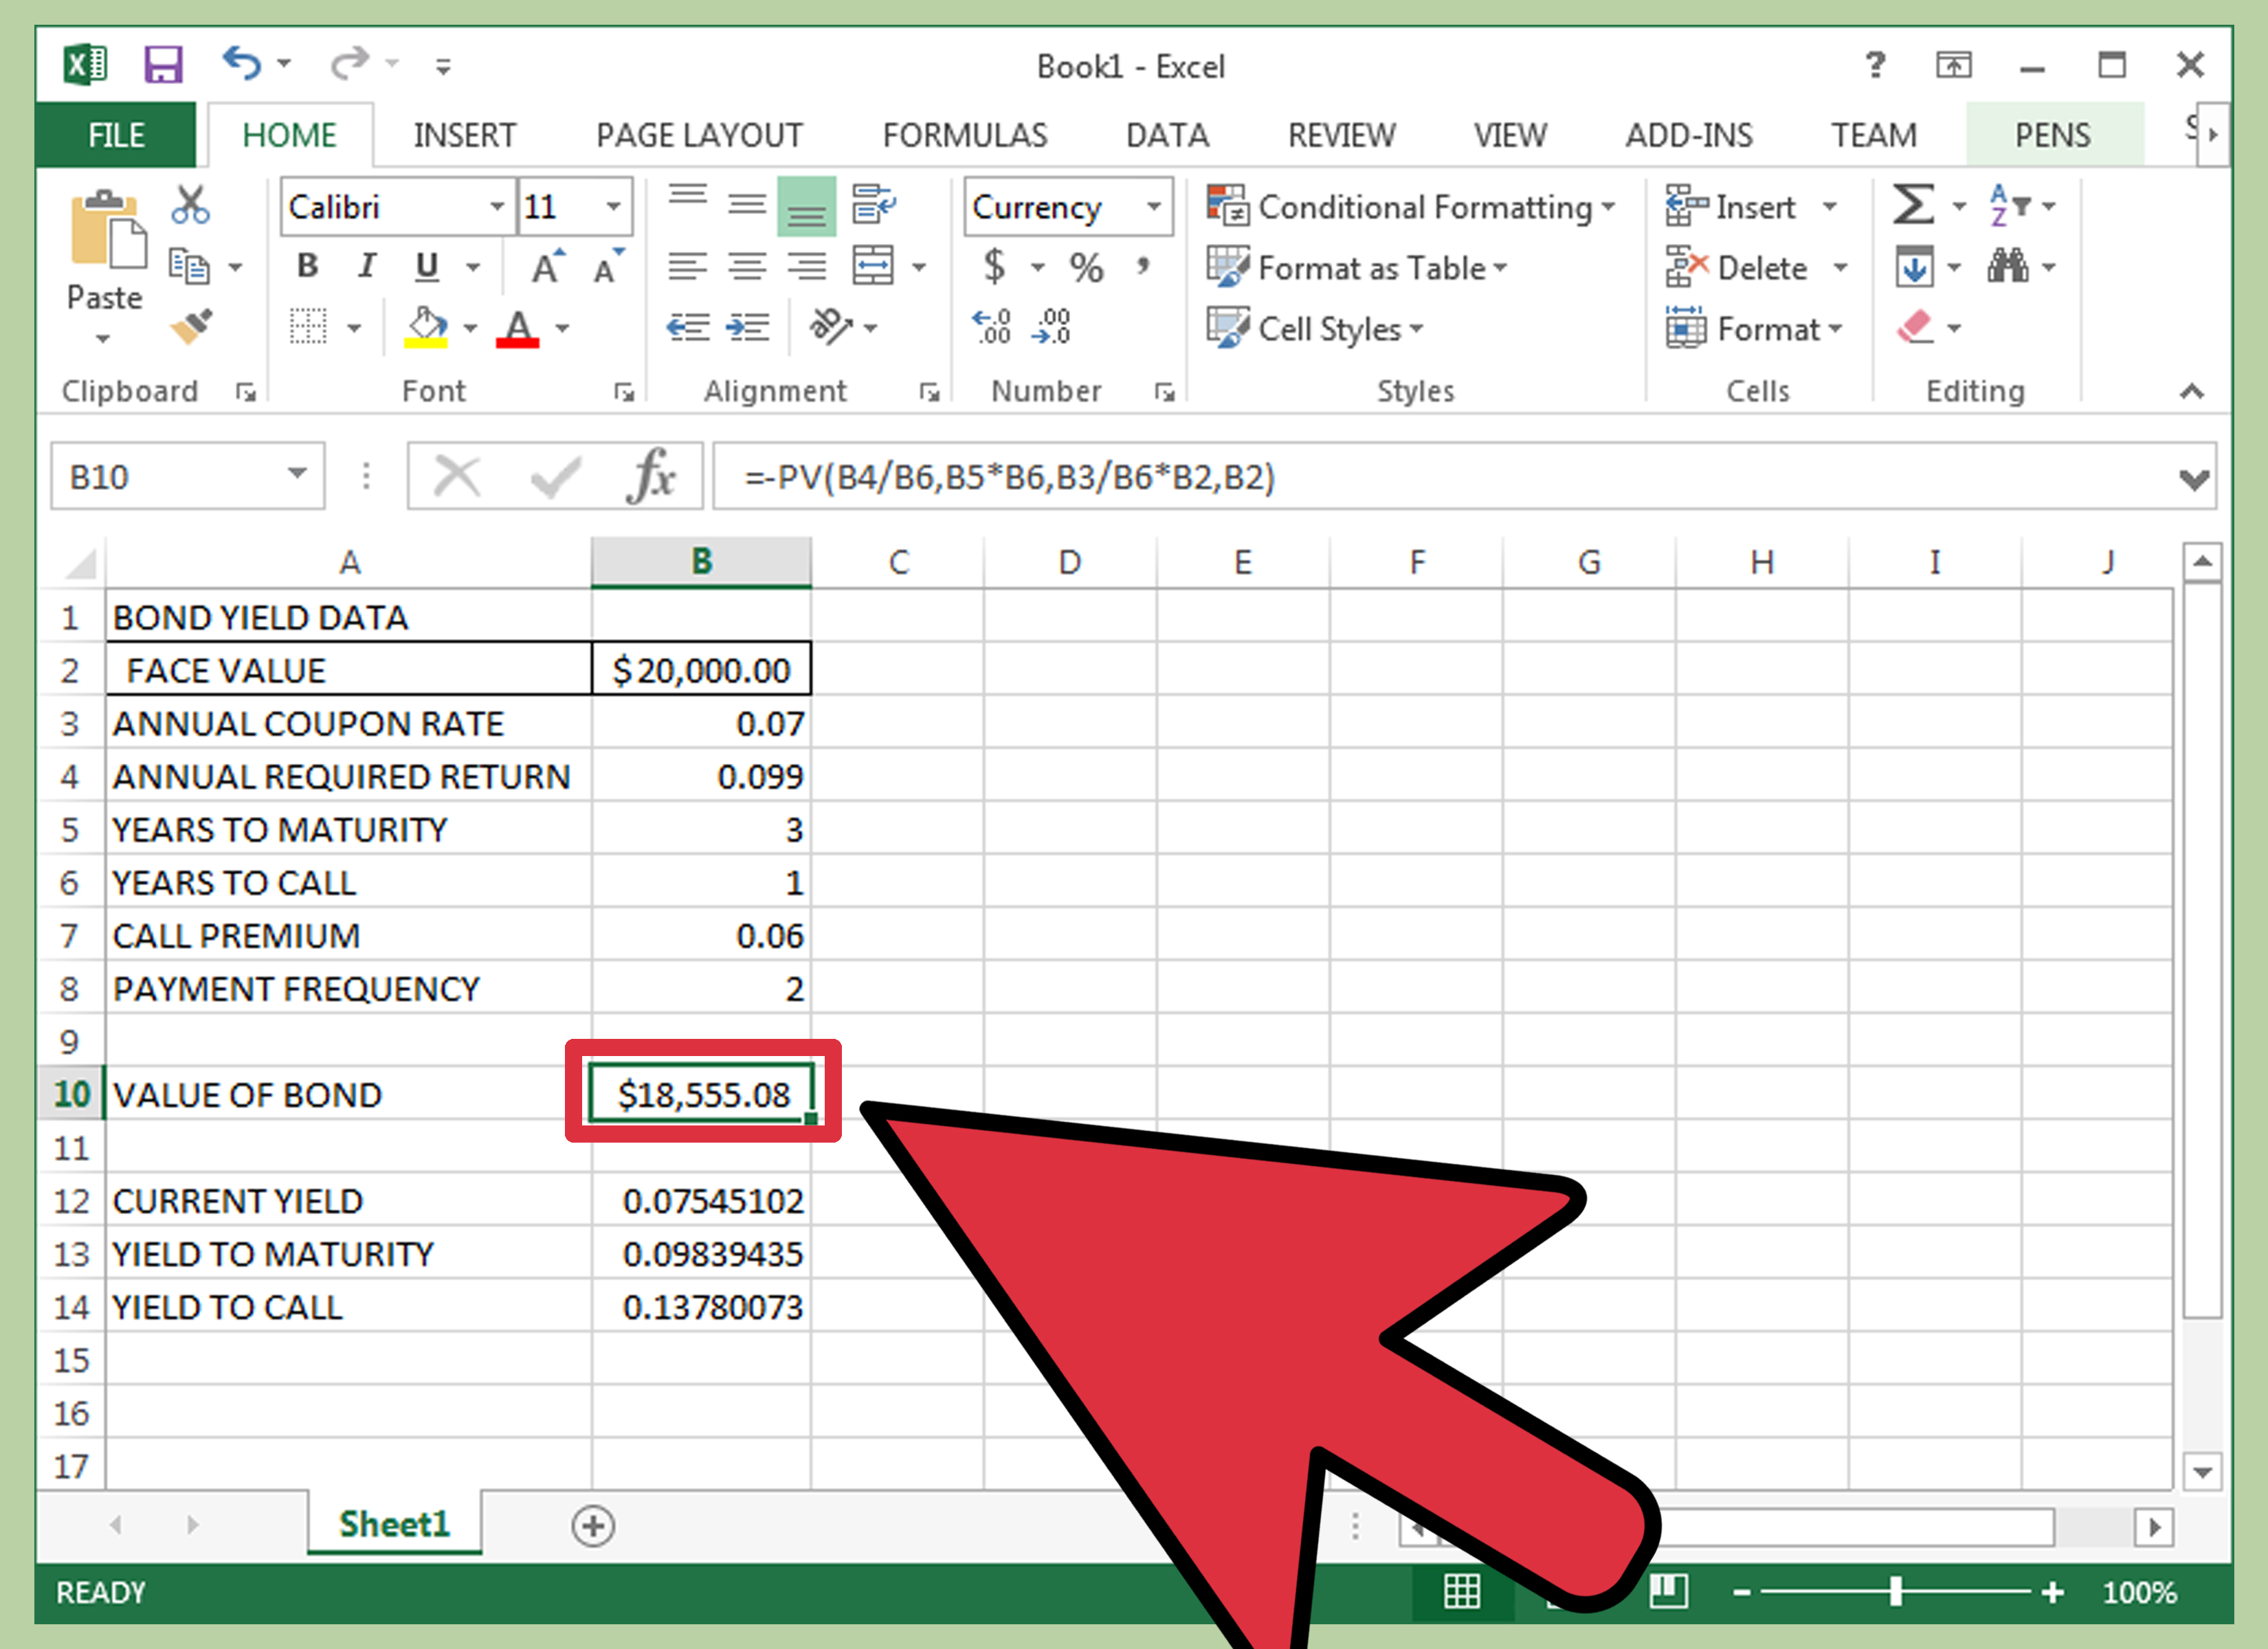 3 Ways To Calculate Bond Value And Current Yield